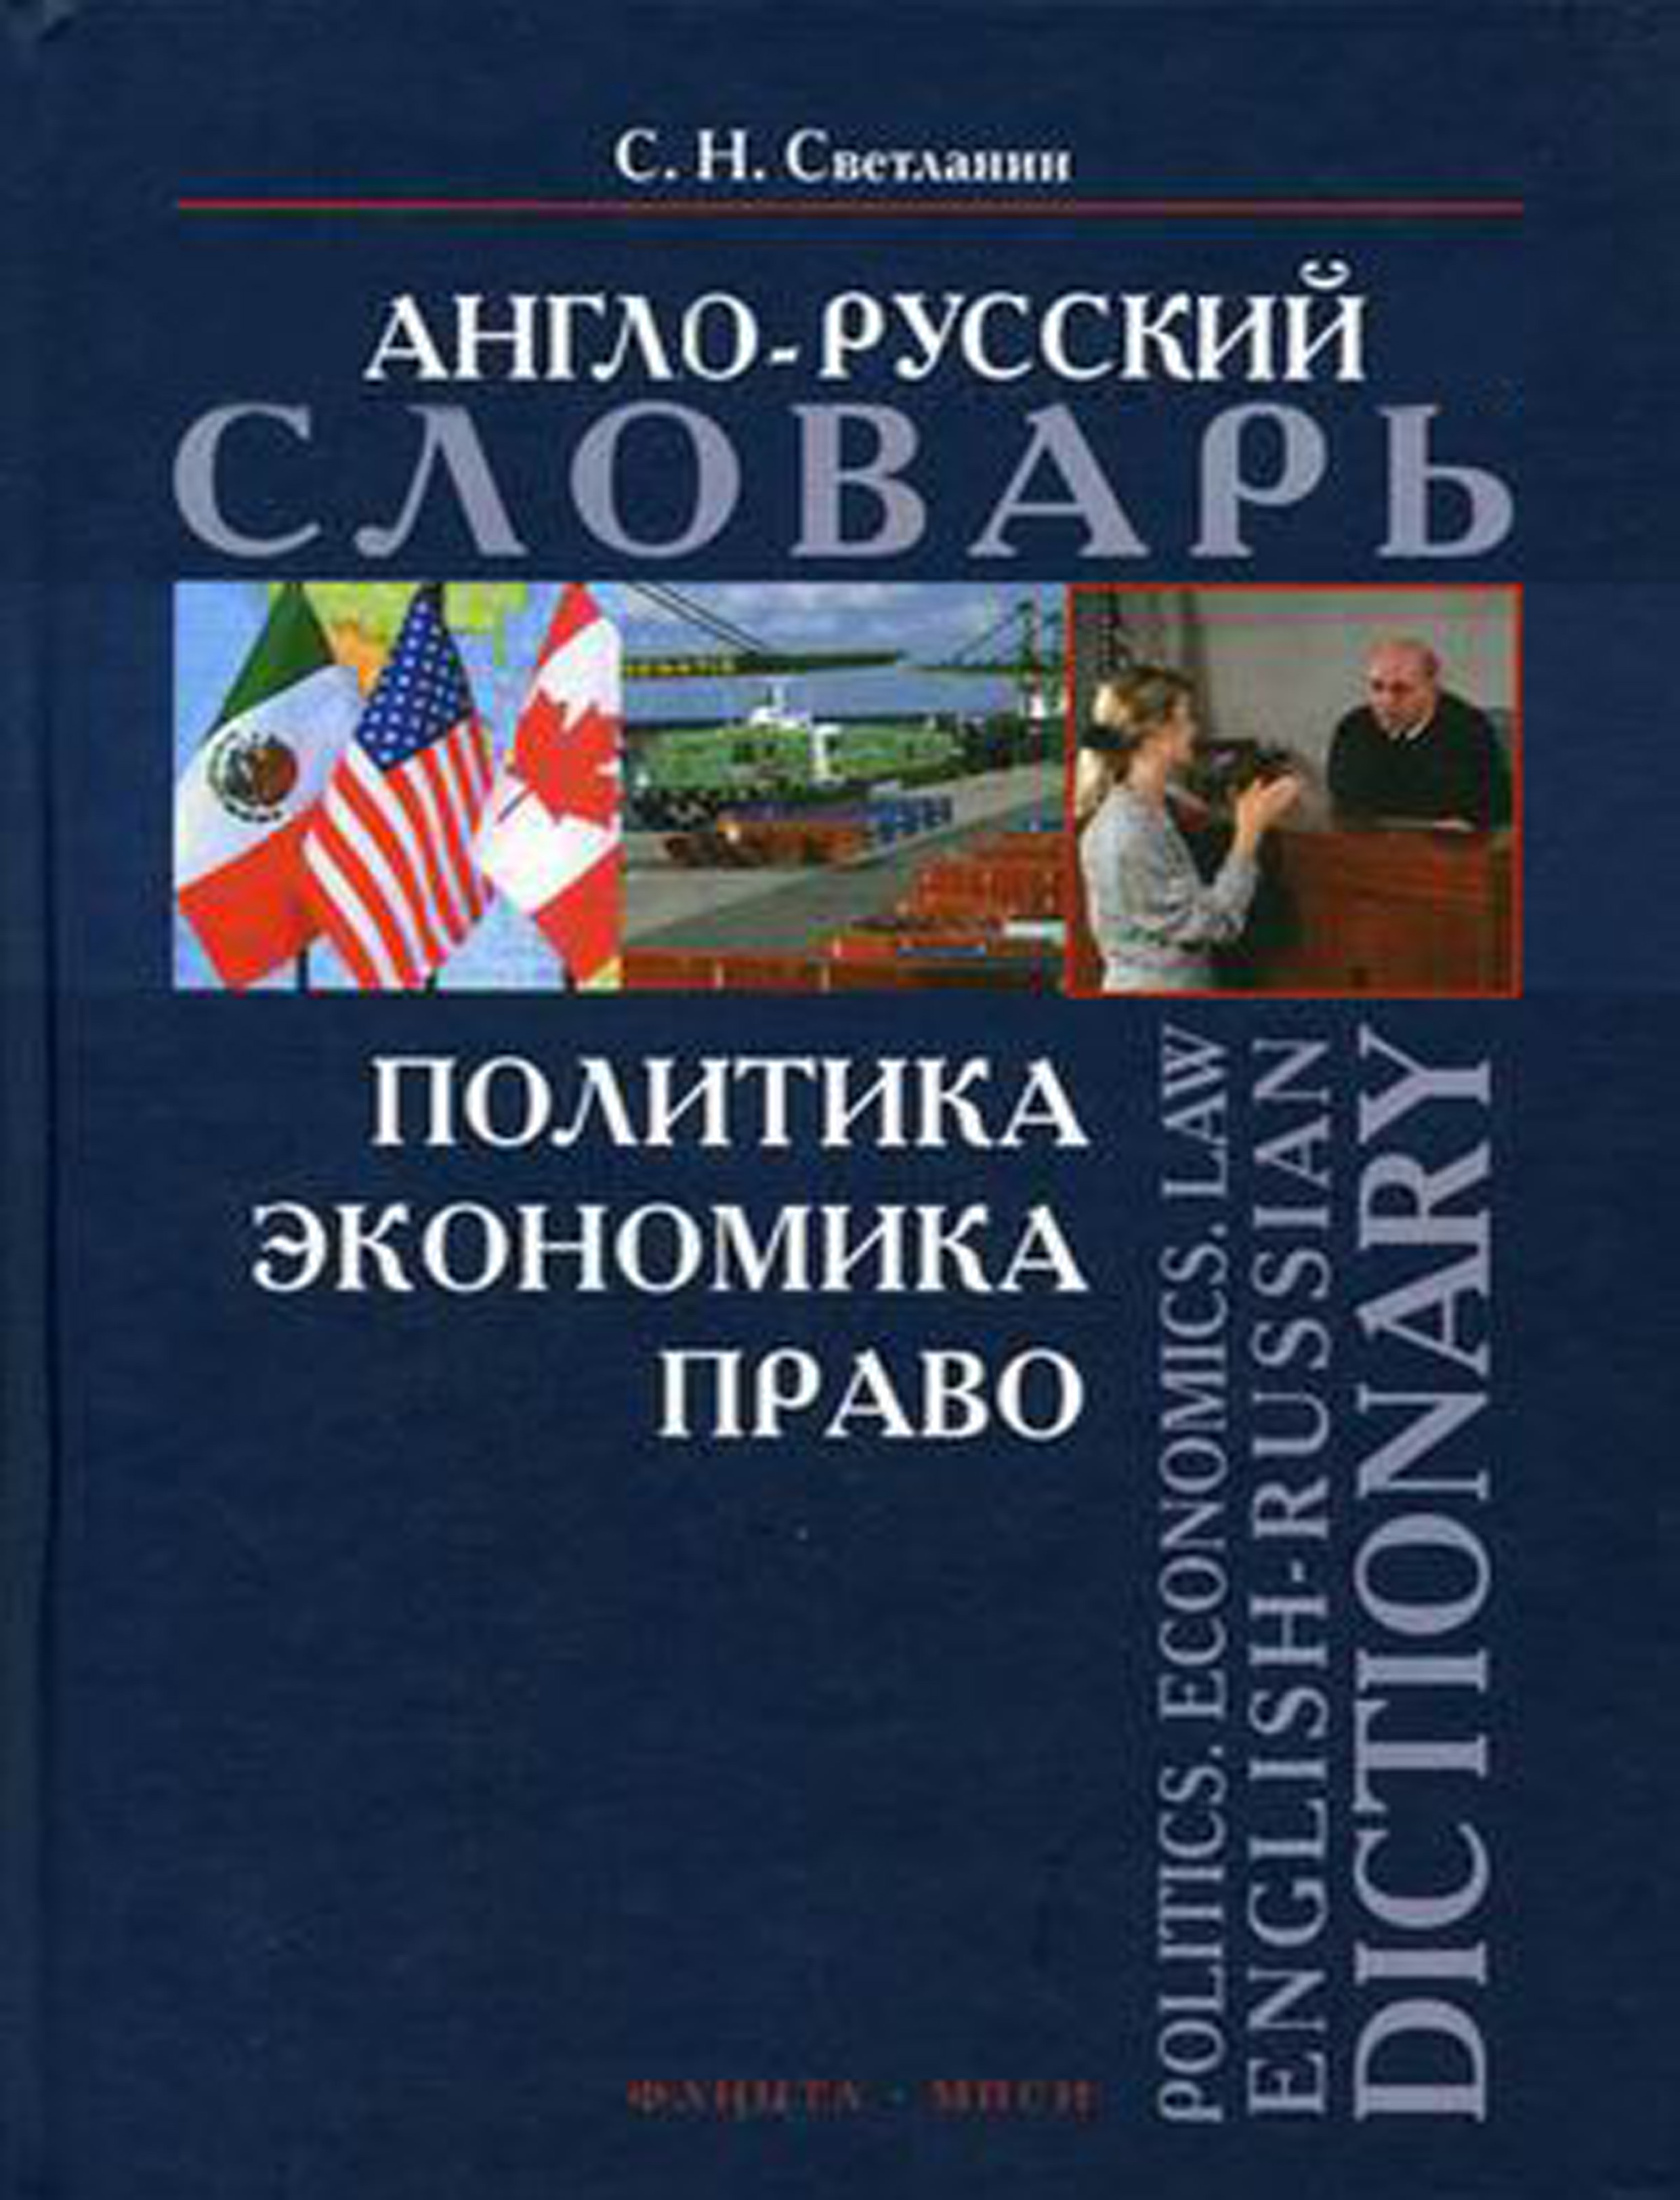 С. Н. Светланин Политика. Экономика. Право. Англо-русский словарь / Politics. Economics. Law. English-Russian Dictionary